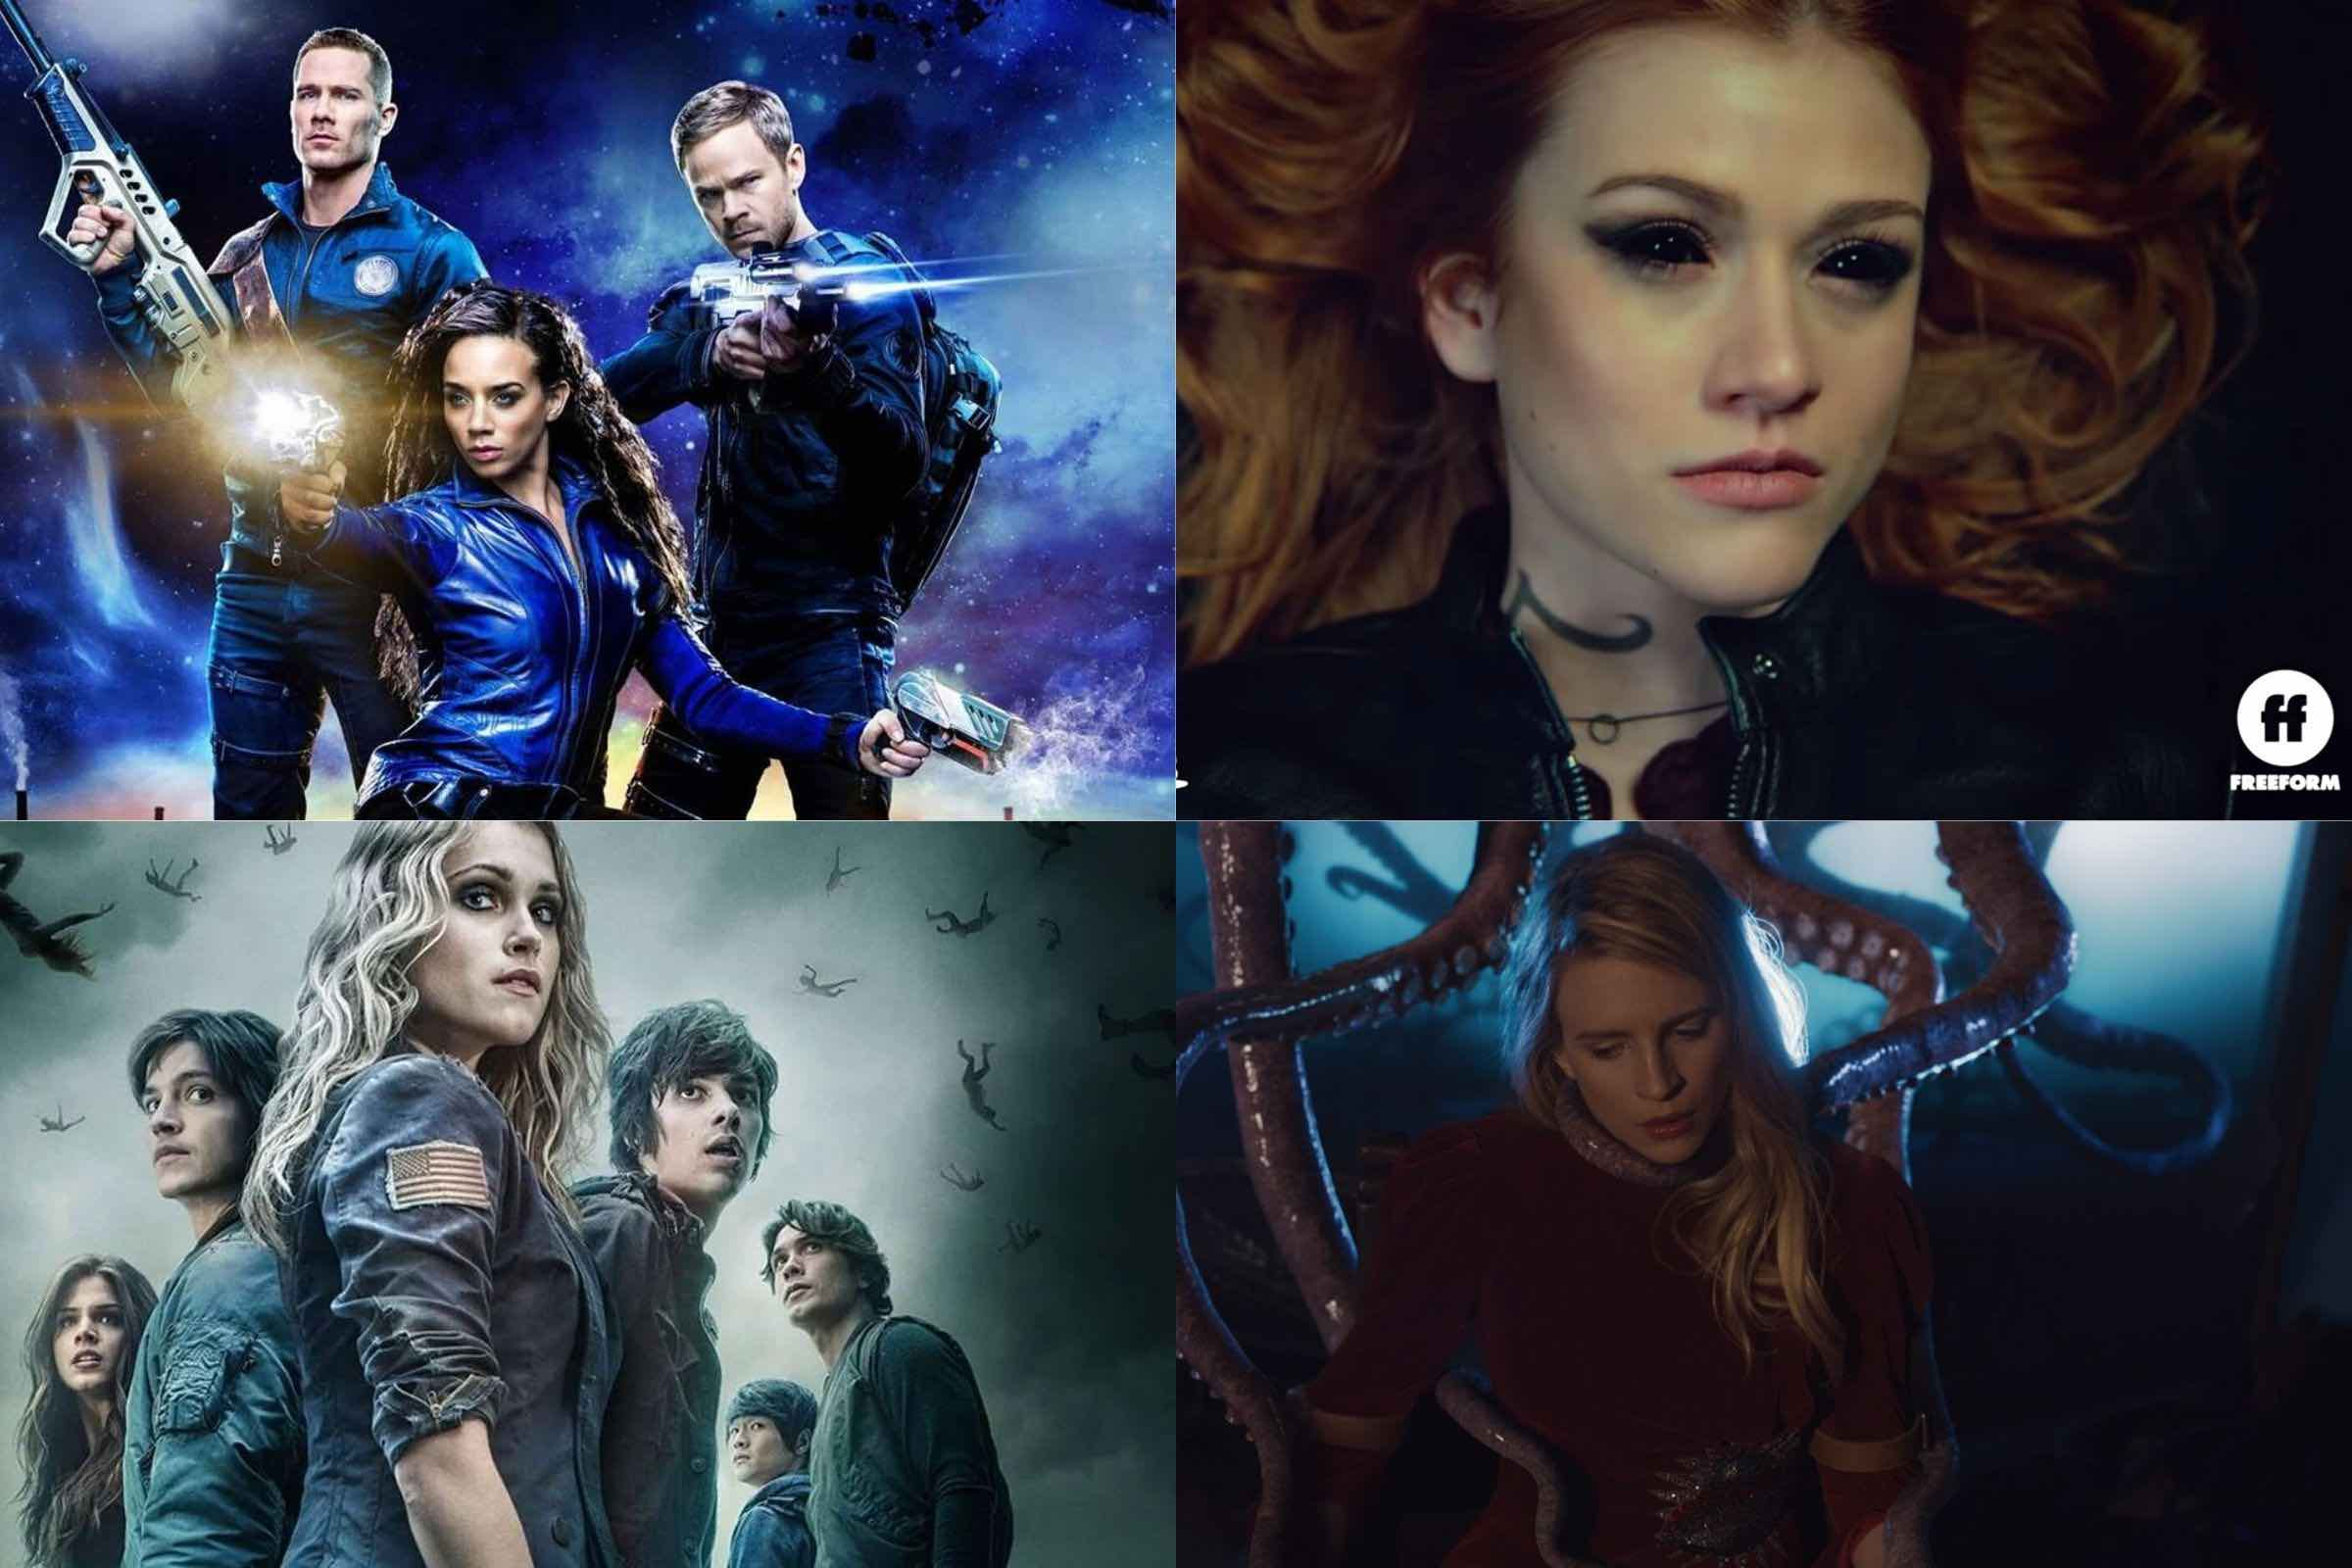 That's right, reader. It's time for the fans to decide what the very Best Sci-Fi TV Series of the 2010s has been in our Bingewatch Awards.